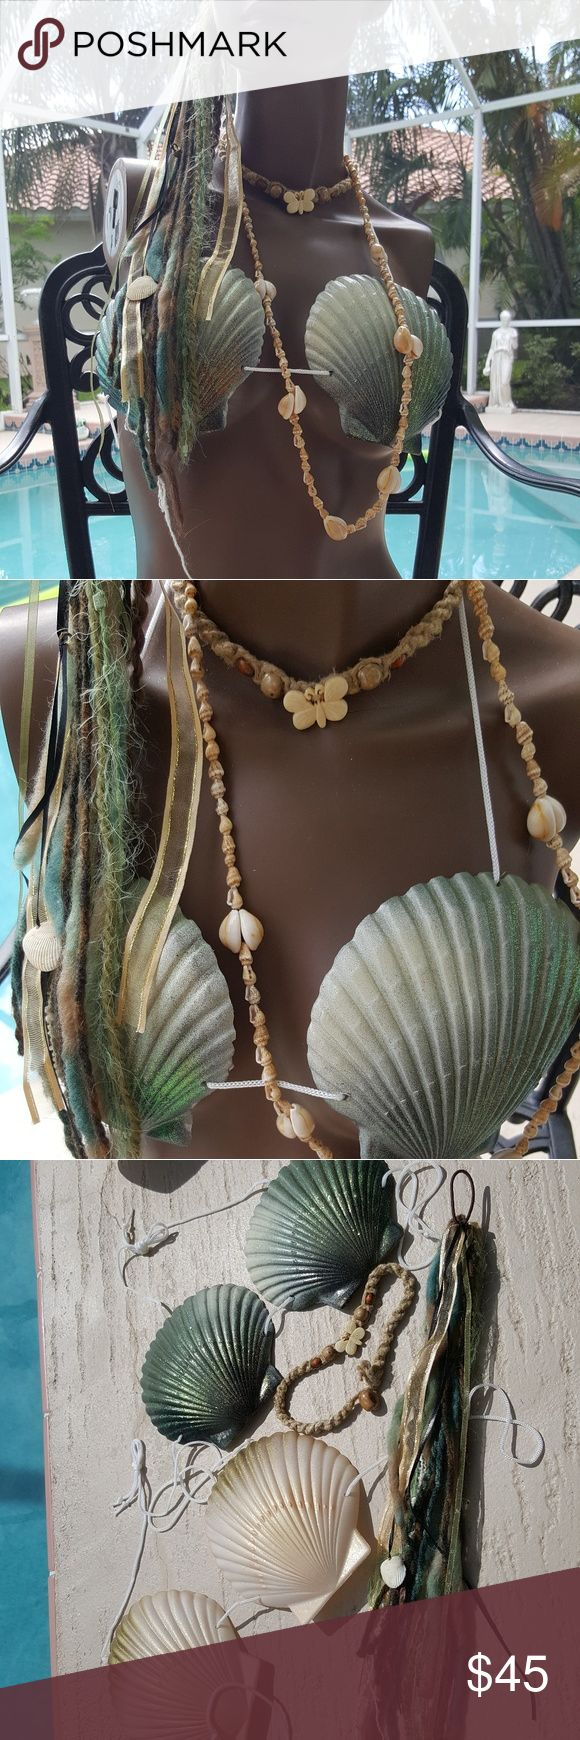 MERMAID SEASHELL SHELL TOPS & HAIR FALL & JEWELRY This Gorgeous Lot contains 2 beautiful SHELL TOPS (bikini TOPS, shells are plastic). 1 SEXY Hair Fall. 2 Necklaces, the smaller one has been worn a few times in the Ocean. This tops can be worn in the water. I am selling these AS-IS, as these have been GENTLY USED. MERMAID / SIREN SWIM BEACH FESTIVAL WEAR COACHELLA COSPLAY DANCE COSTUME Swim